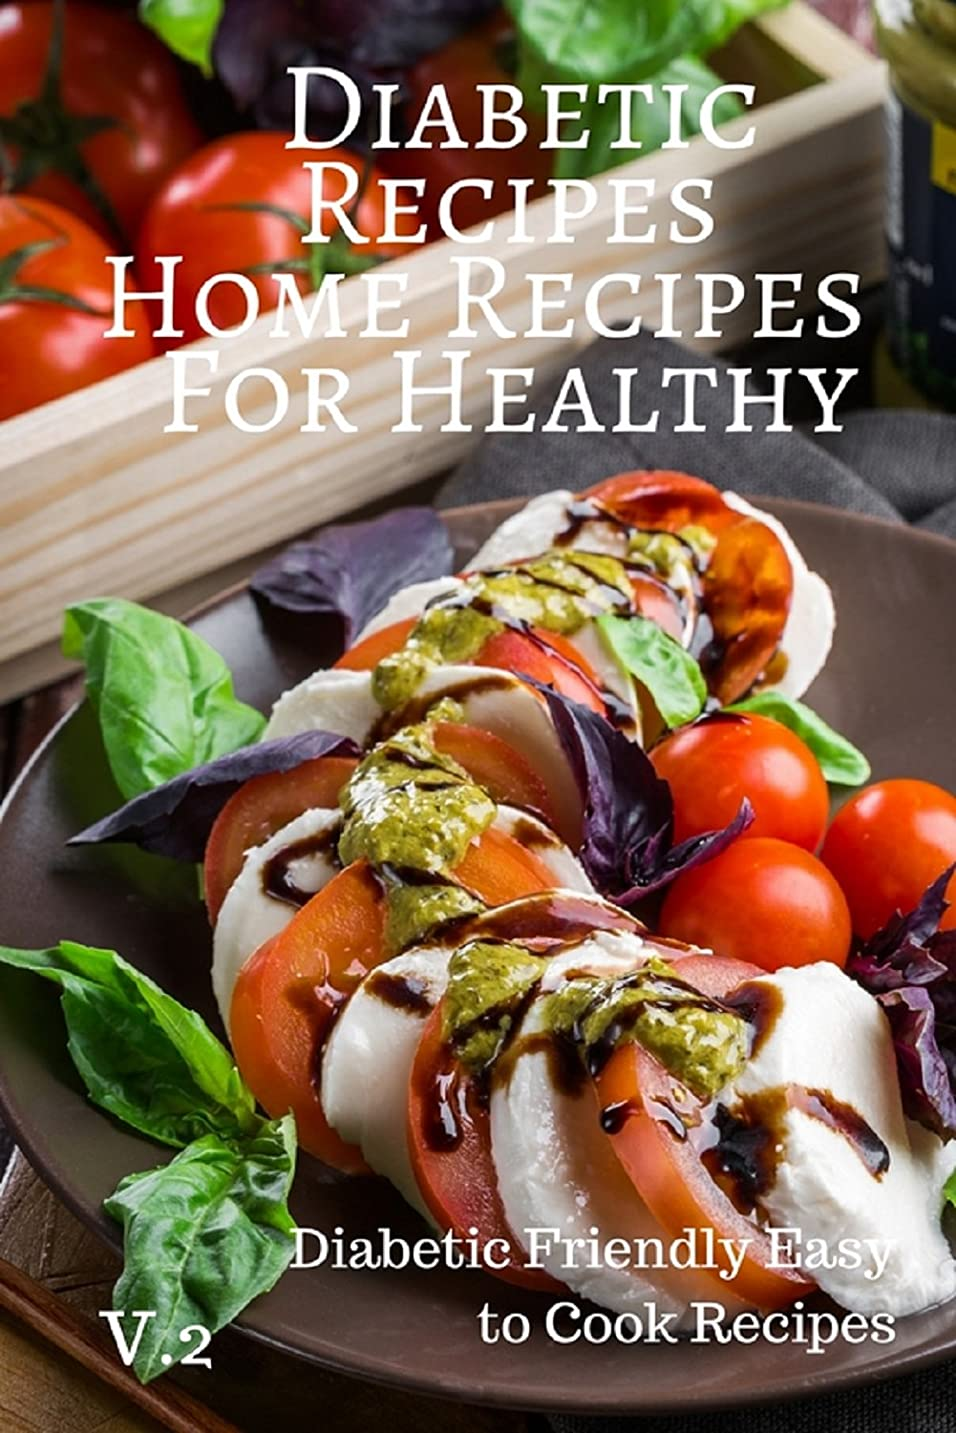 Diabetic Recipes Home Recipes For Healthy V.2 Diabetic Friendly Easy to Cook Recipes: Diabetic Recipes Home Recipes For Healthy V.2 Diabetic Friendly Easy to Cook Re (English Edition)